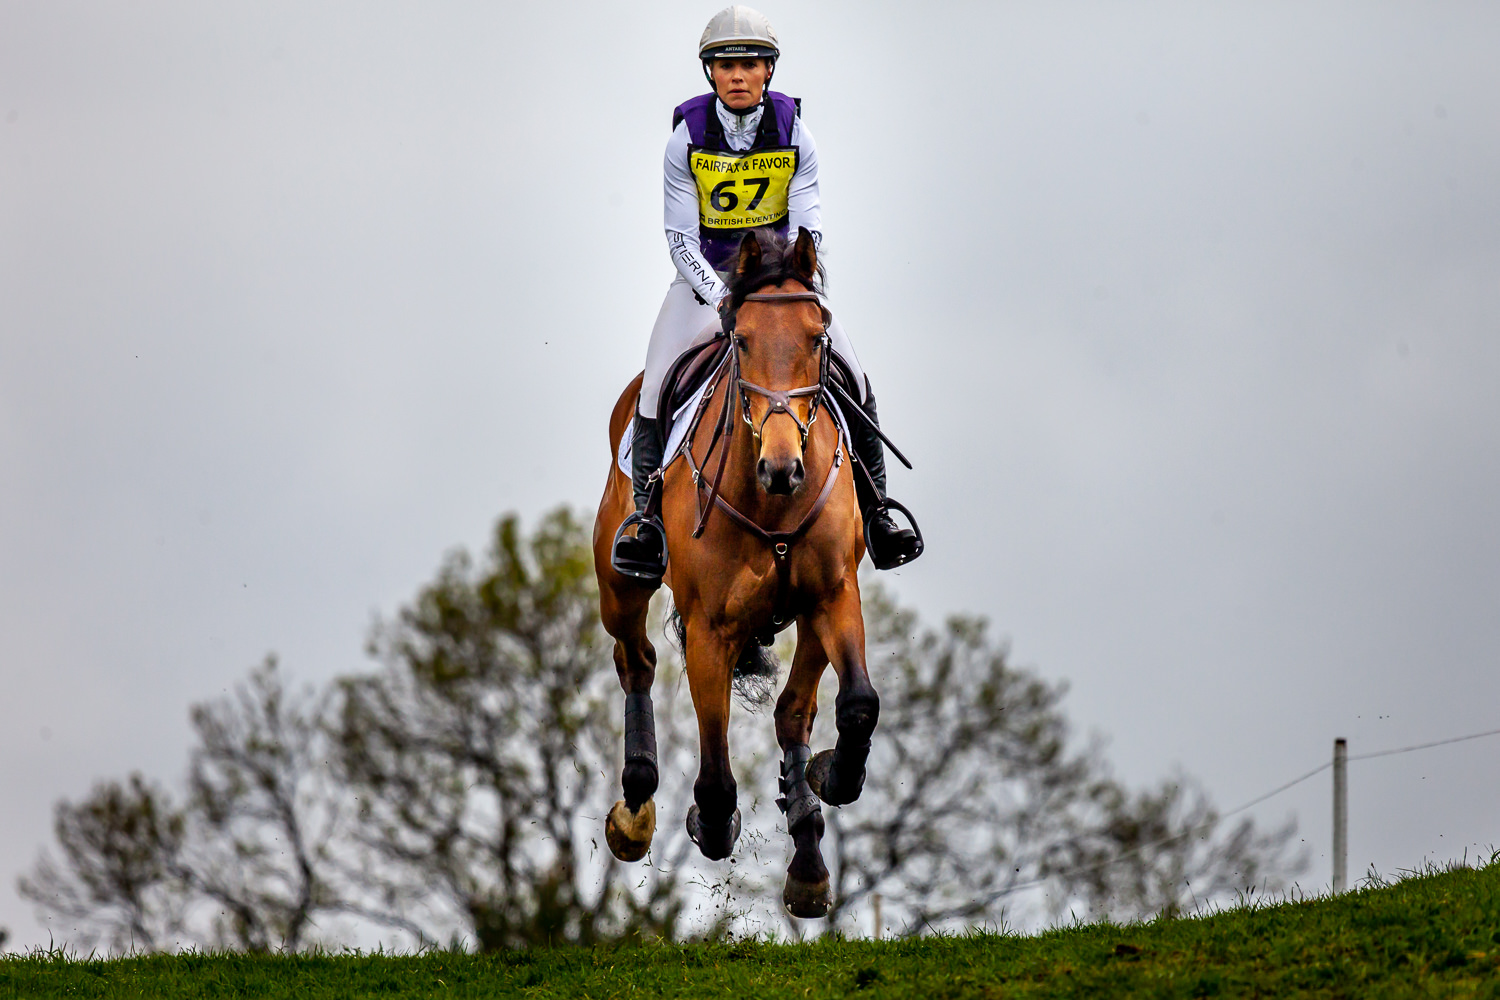 Rider tackles the jump at the Rockingham Horse Trials 2019